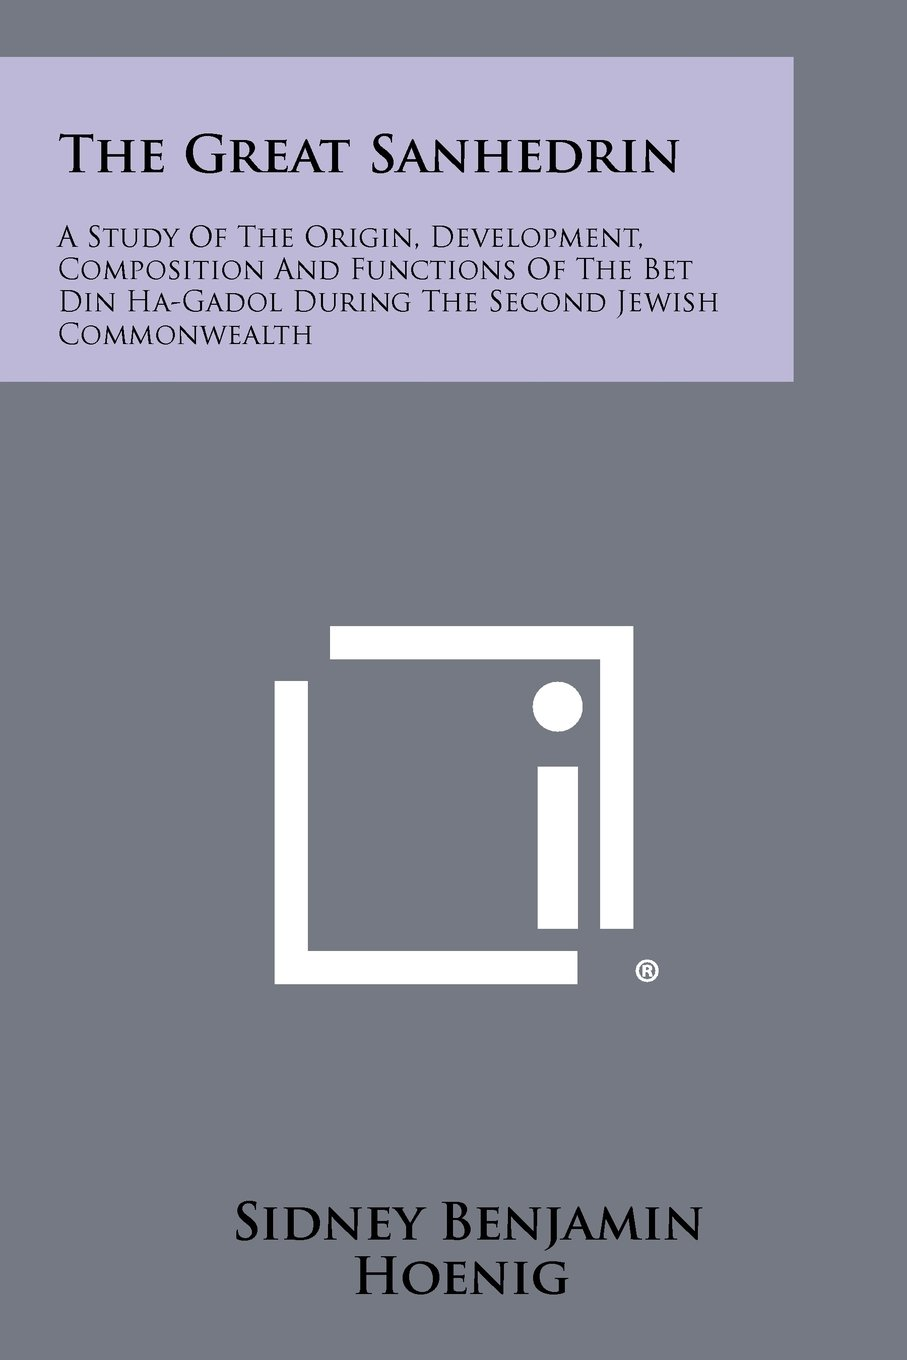 The Great Sanhedrin: A Study Of The Origin, Development, Composition And Functions Of The Bet Din Ha-Gadol During The Second Jewish Commonwealth pdf